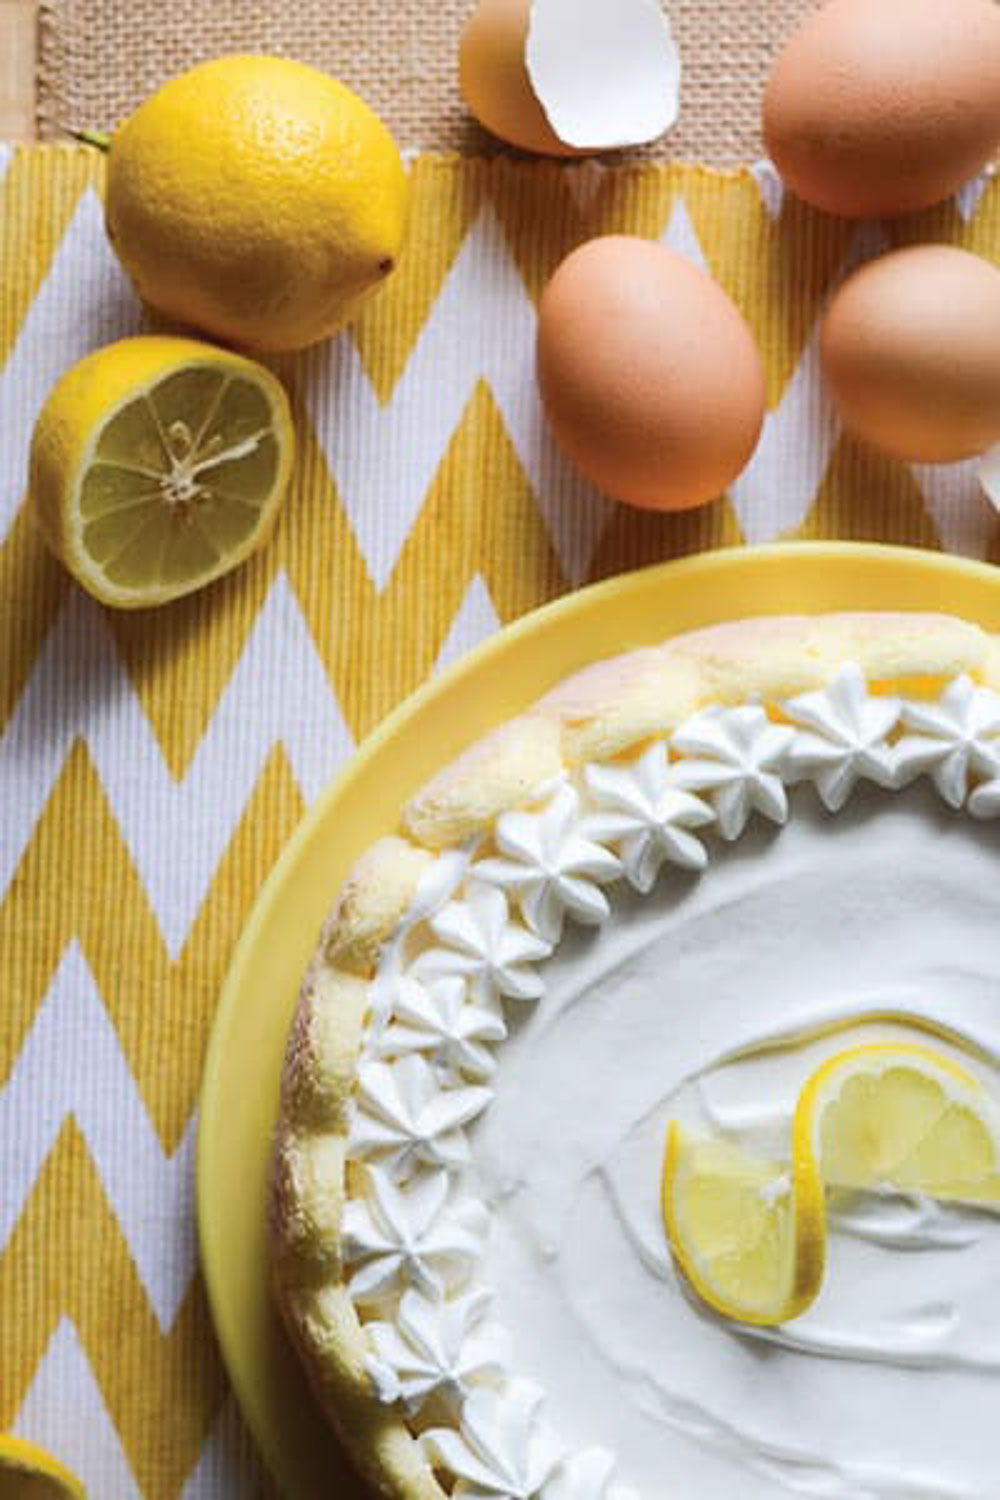 A whole  cake on a yellow plate with a slice of lemon on top with whole eggs and cut lemons on a yellow and white chevron towel.